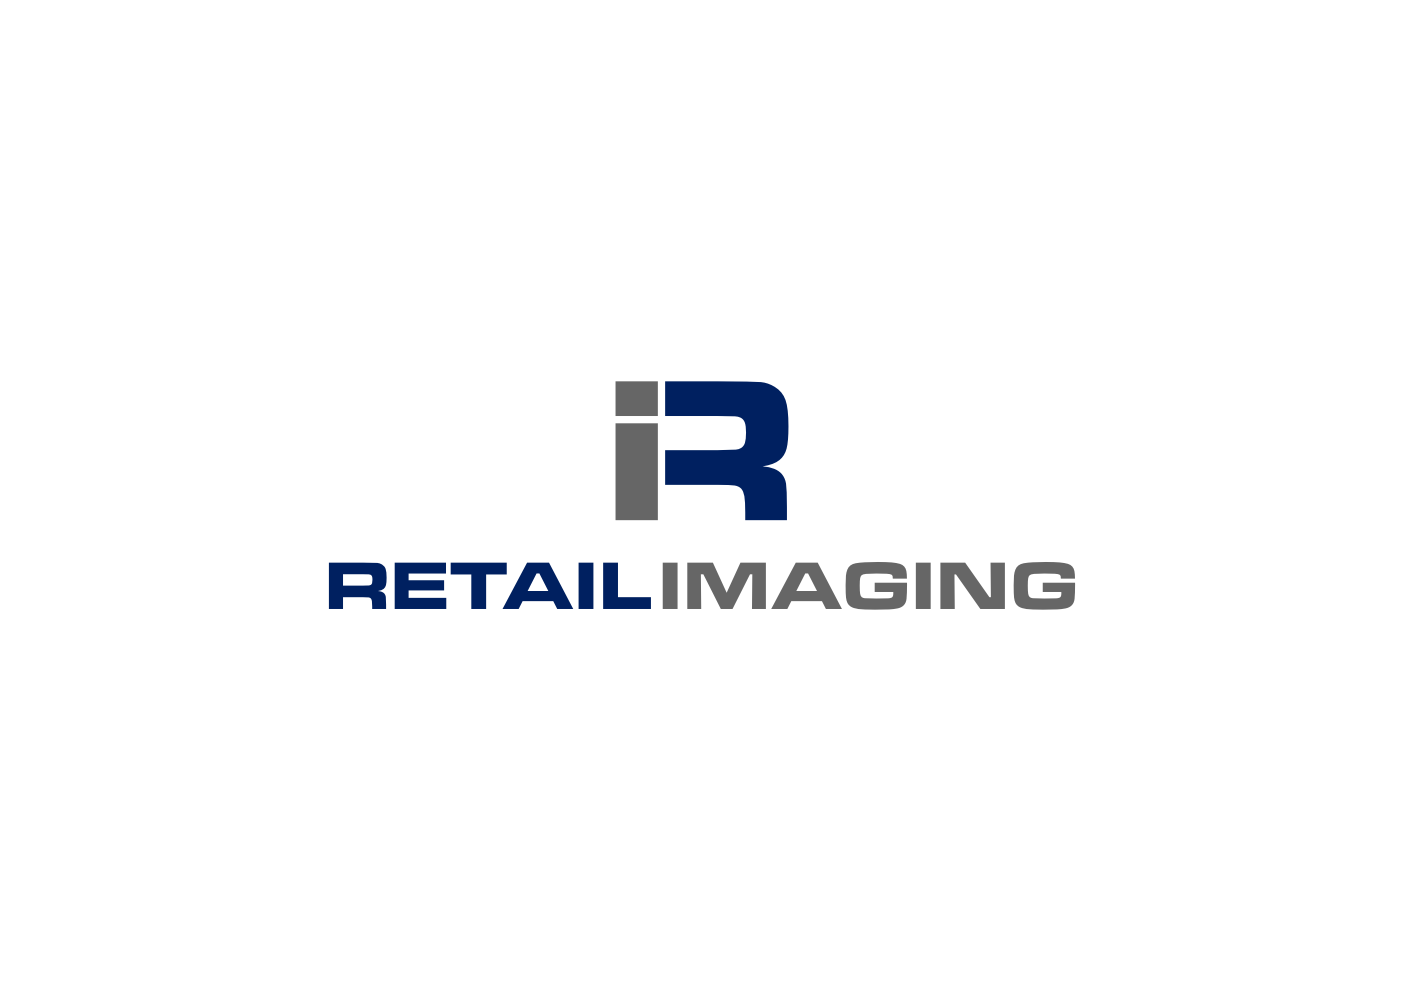 Logo Design by Ekarini Puspitasari - Entry No. 16 in the Logo Design Contest Creative Logo Design for Retail Imaging Management Group (R.I.M.G.).